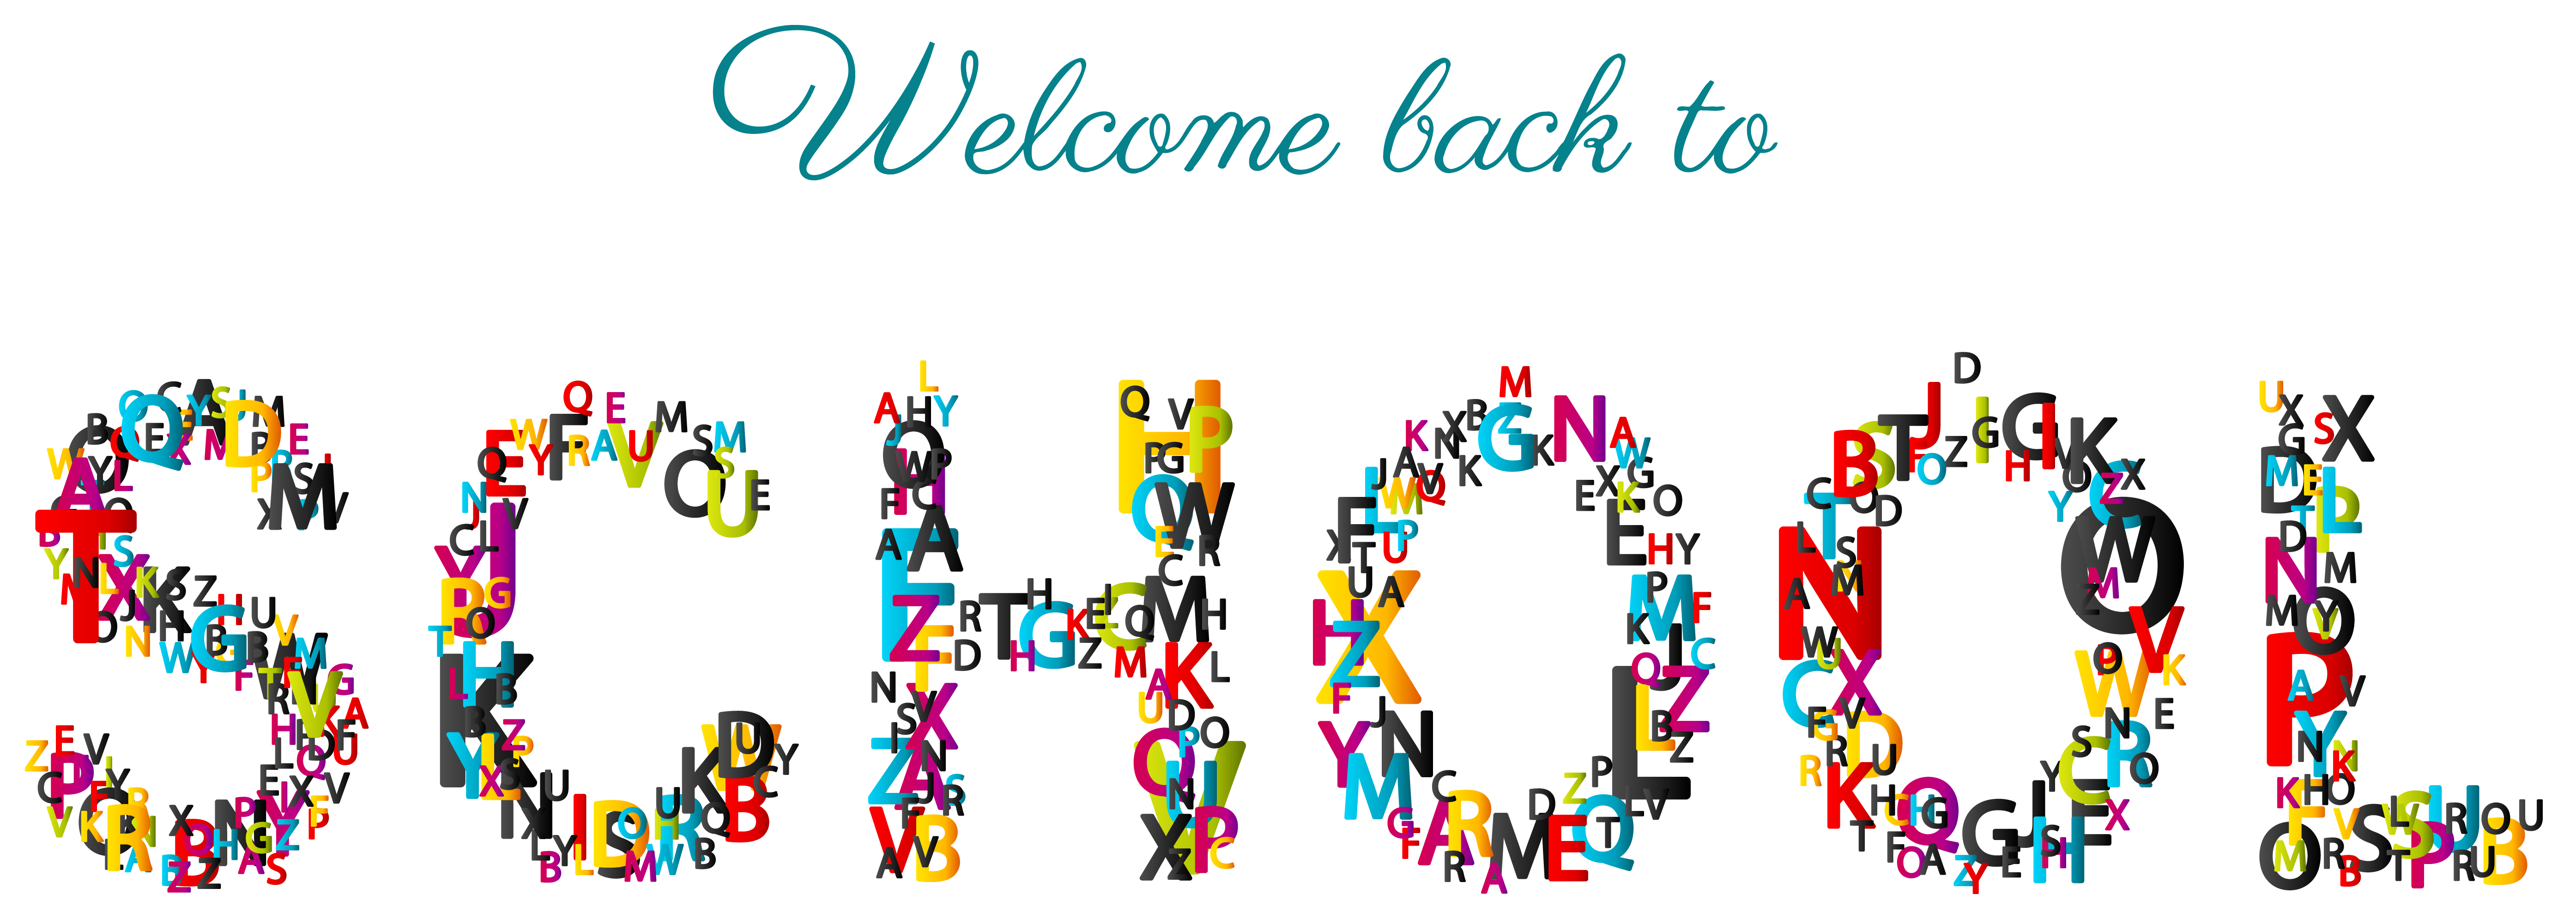 Welcome Back To School Clipart Banner-Welcome Back To School Clipart Banner-19